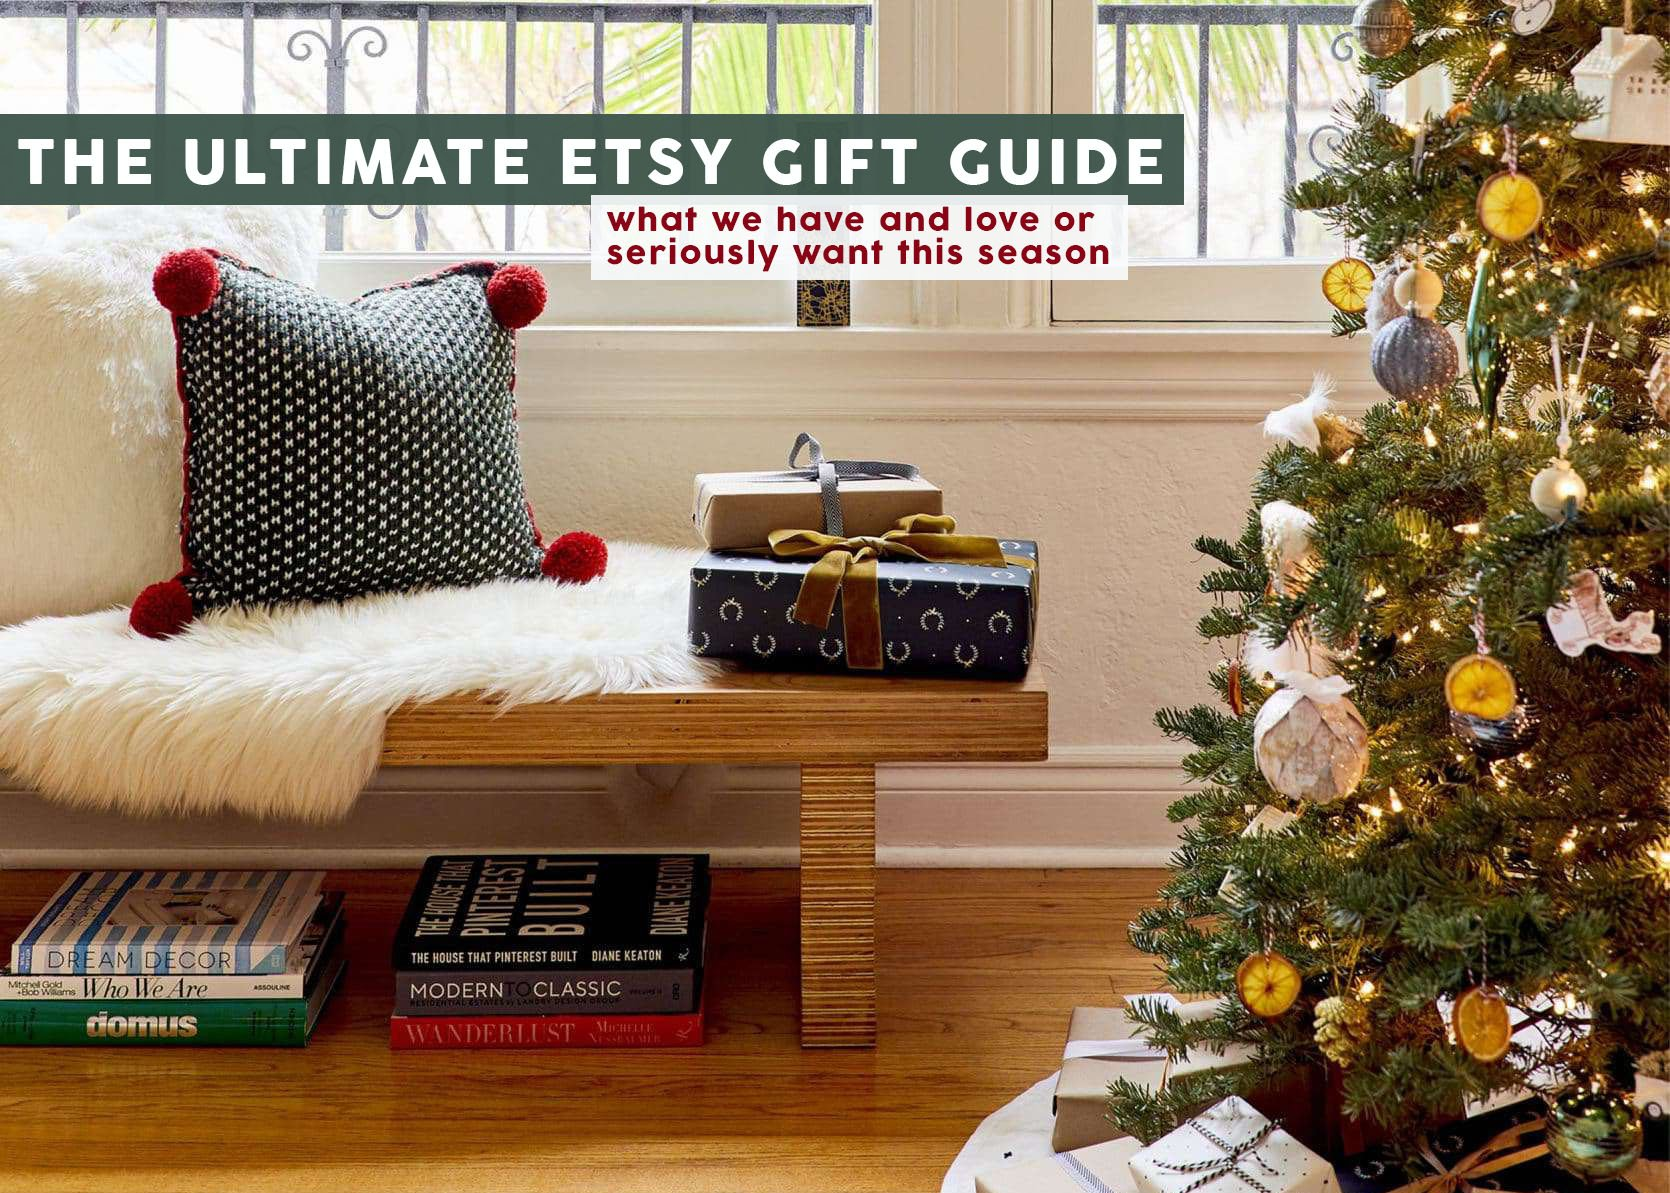 Floor 2 Christmas 2020 Guide 2020 Gift Guide: 82 Of Our TOP Picks From Etsy (Everything From